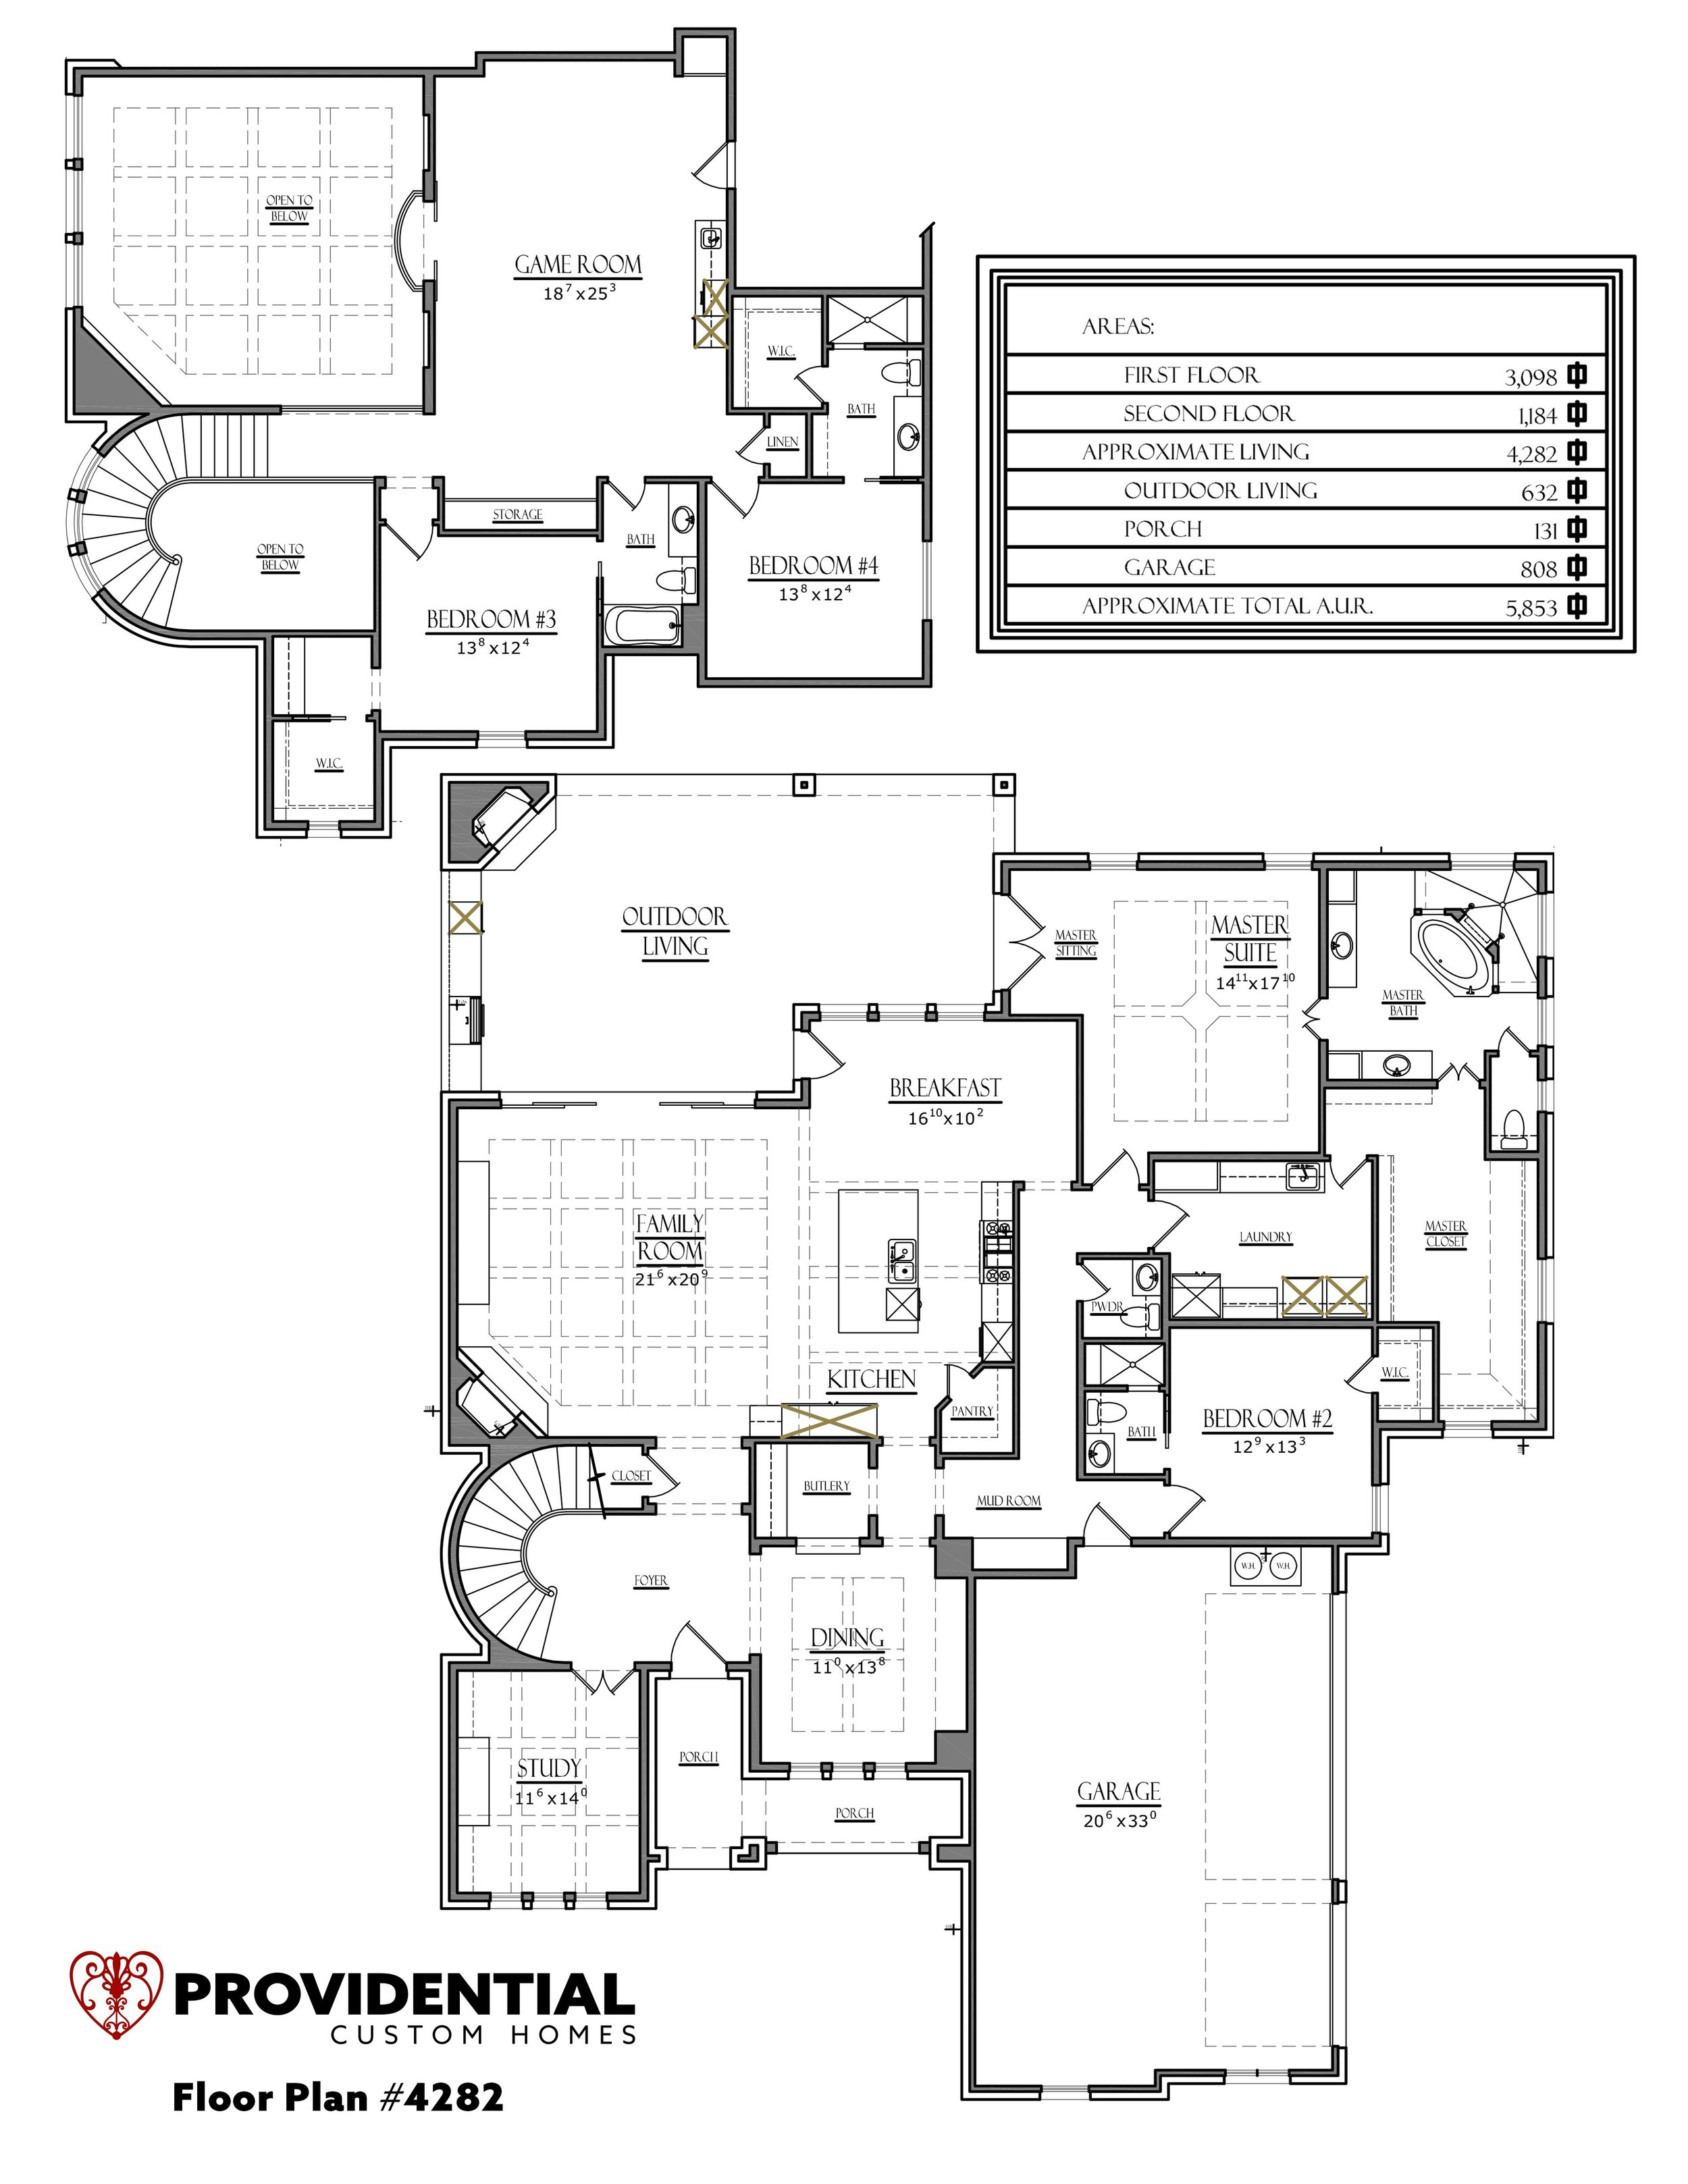 The FLOOR PLAN #4282.jpg